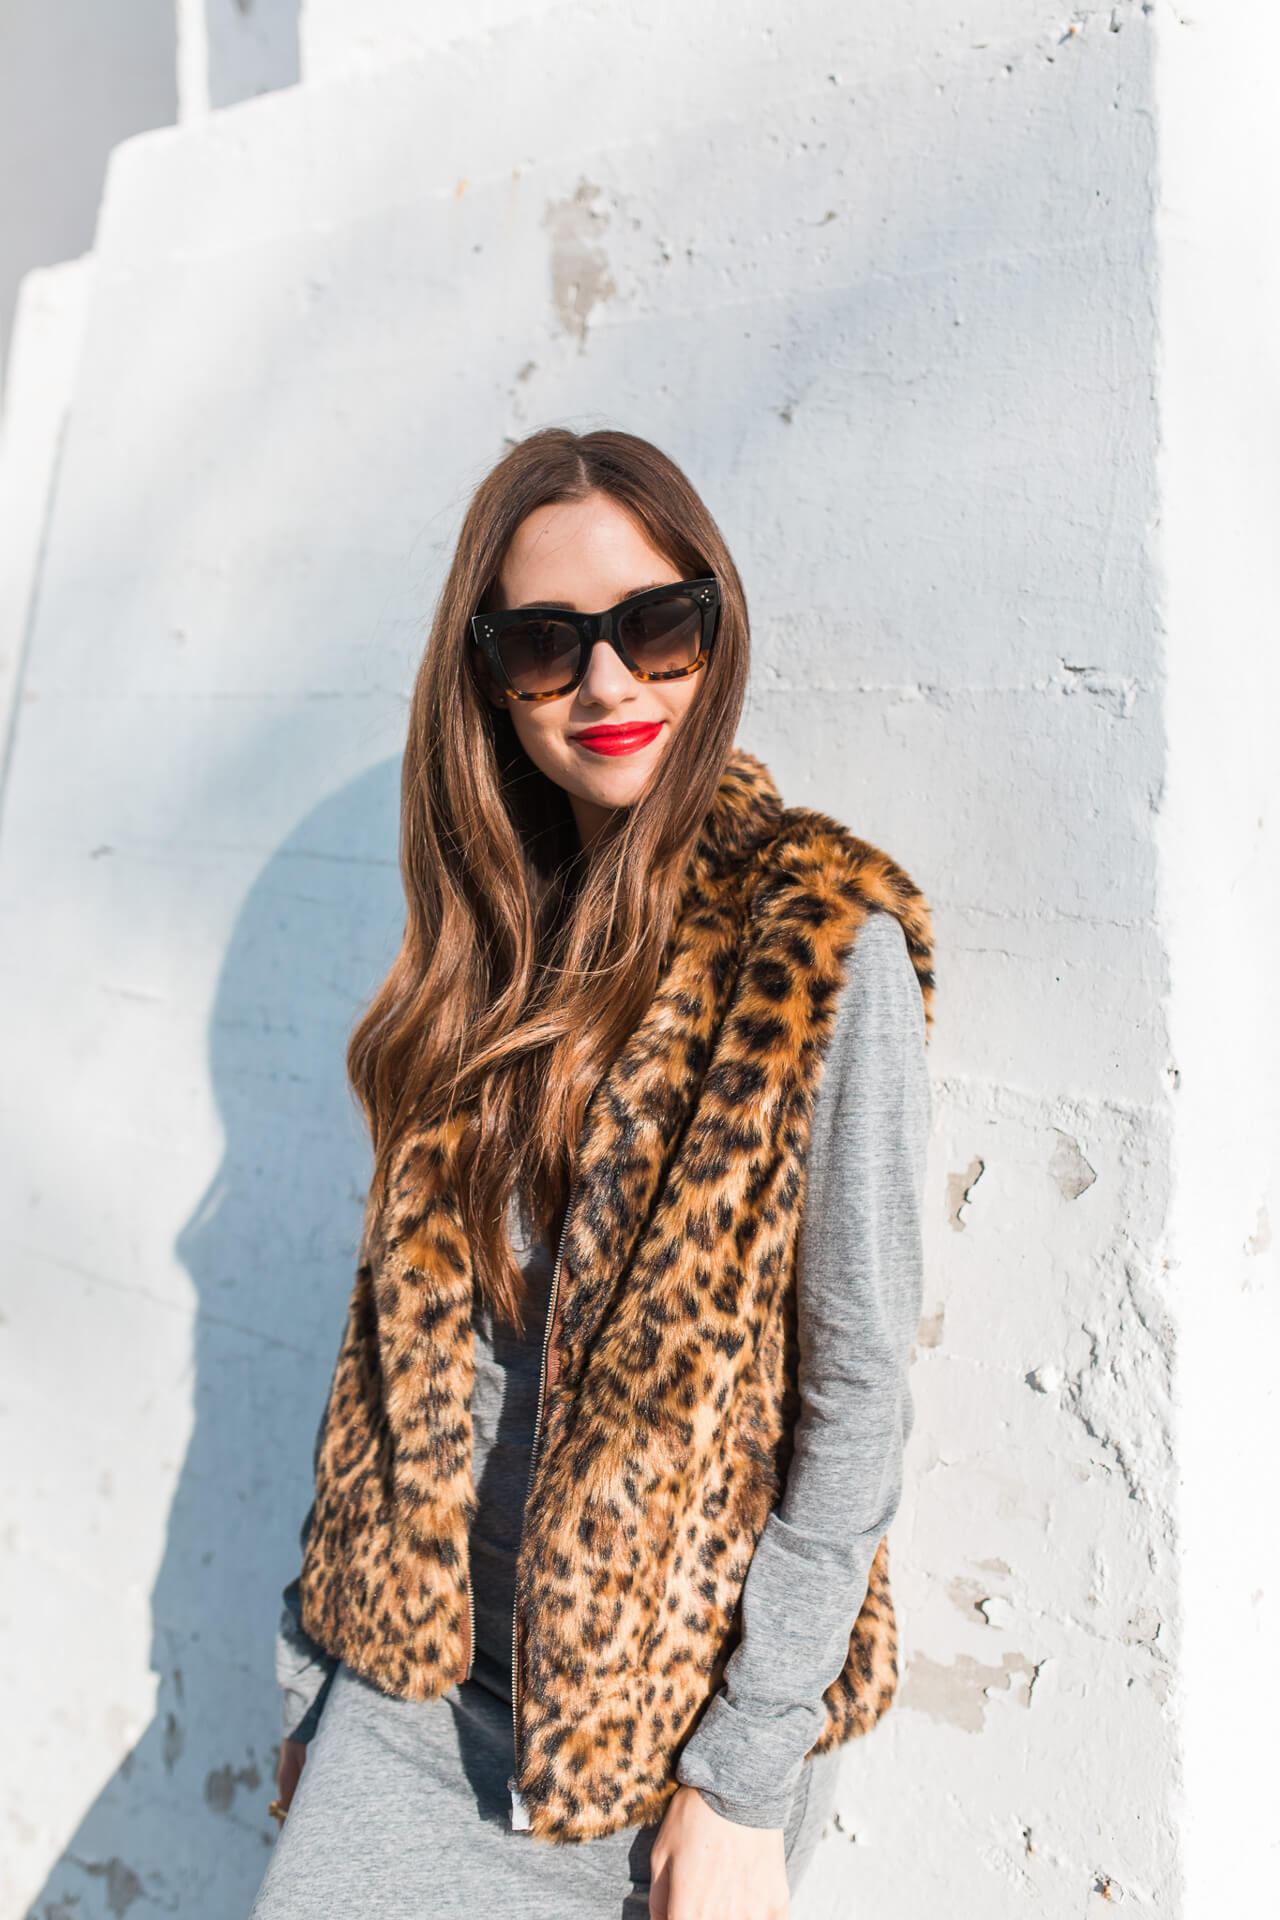 Gorgeous red lip for the perfect fall look